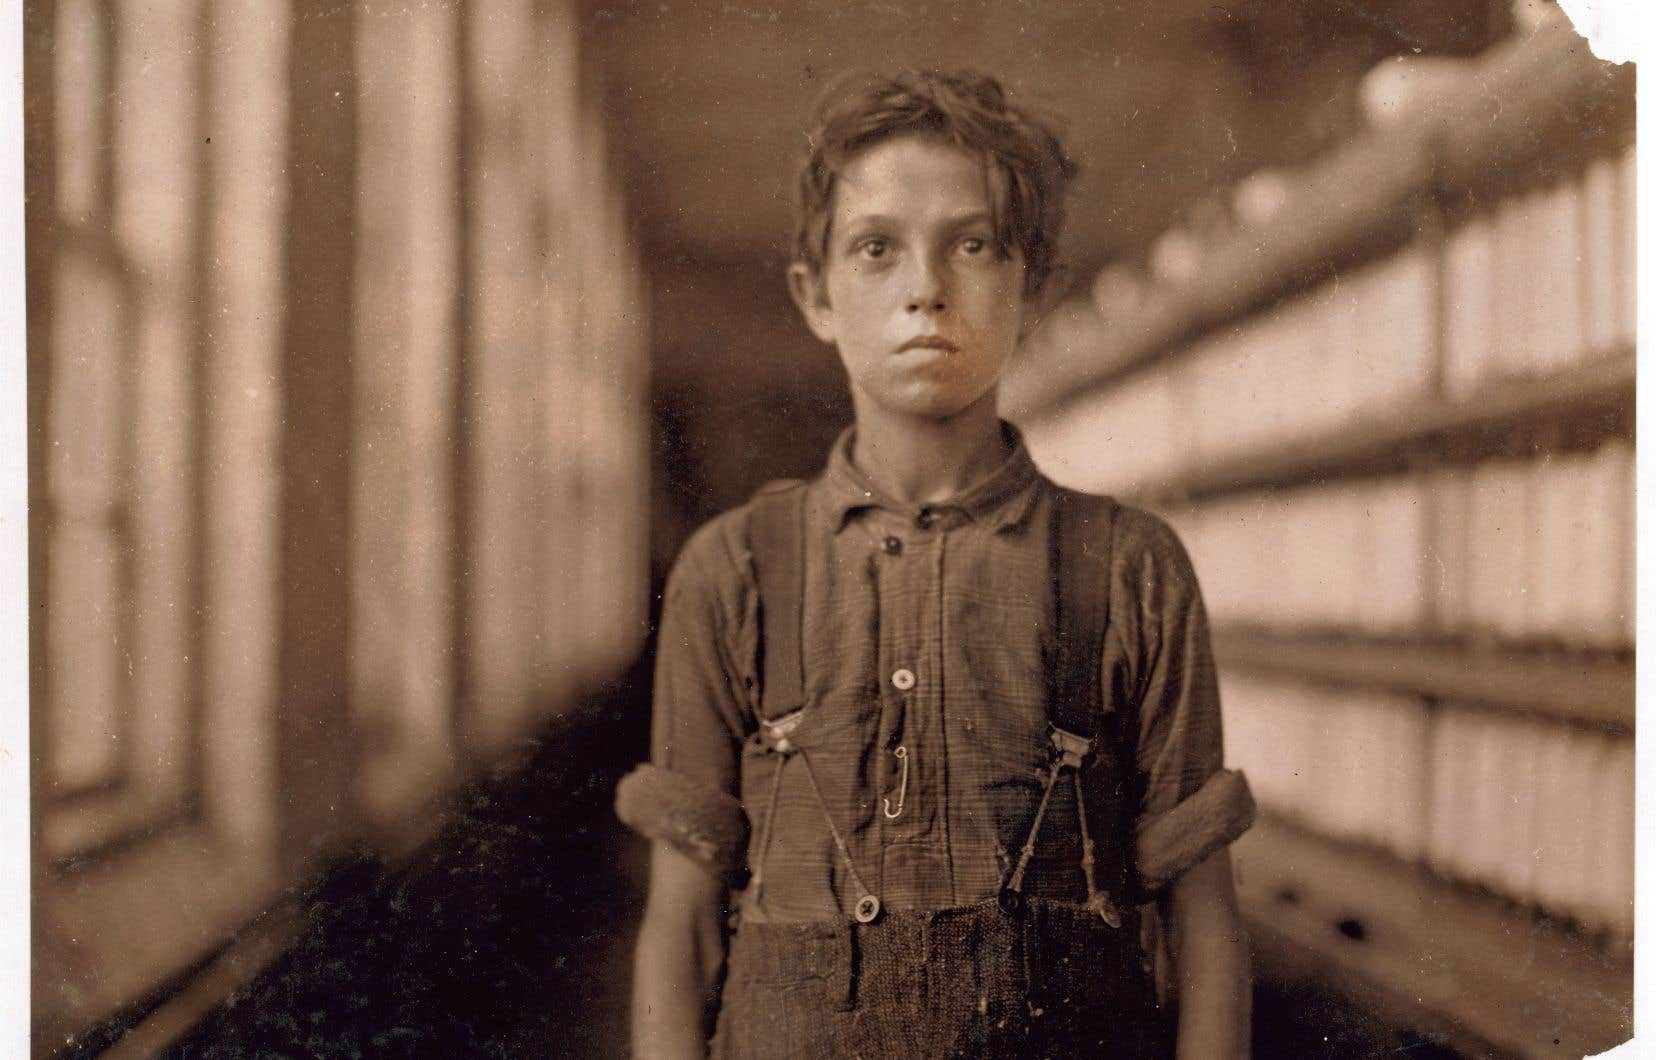 Parmi les milliers d'immigrants canadiens-français qui peinent dans les usines de la Nouvelle-Angleterre, on trouve des enfants. Le sociologue et photographe Lewis Hine documente leurs conditions de travail. Il note à l'oreille leurs noms. Ici «Jo Bodeon», Joseph Beaudoin, photographié à la Chace Cotton Mill de Burlington, au Vermont, en 1909.